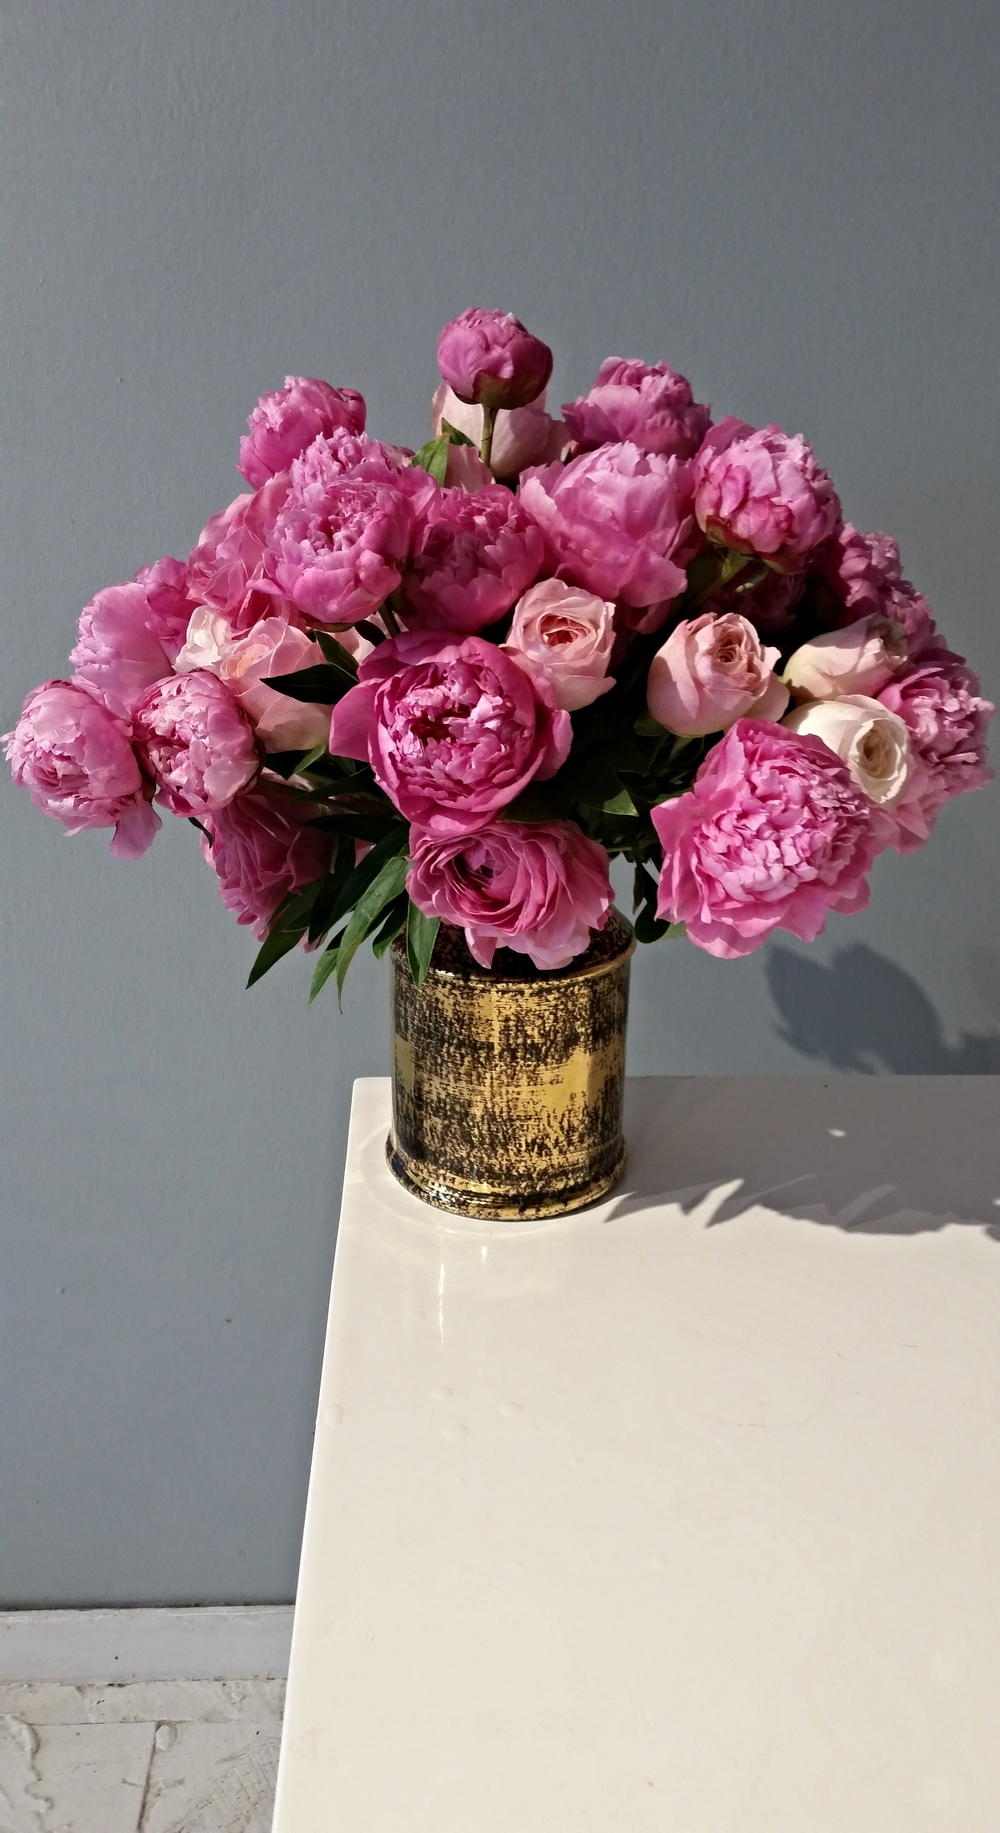 peony and roses, mixed arrangement flowers luxury los angeles, box of organic roses, lily lodge, los angeles, flowers, flowers in a box, west hollywood, flowers, luxury